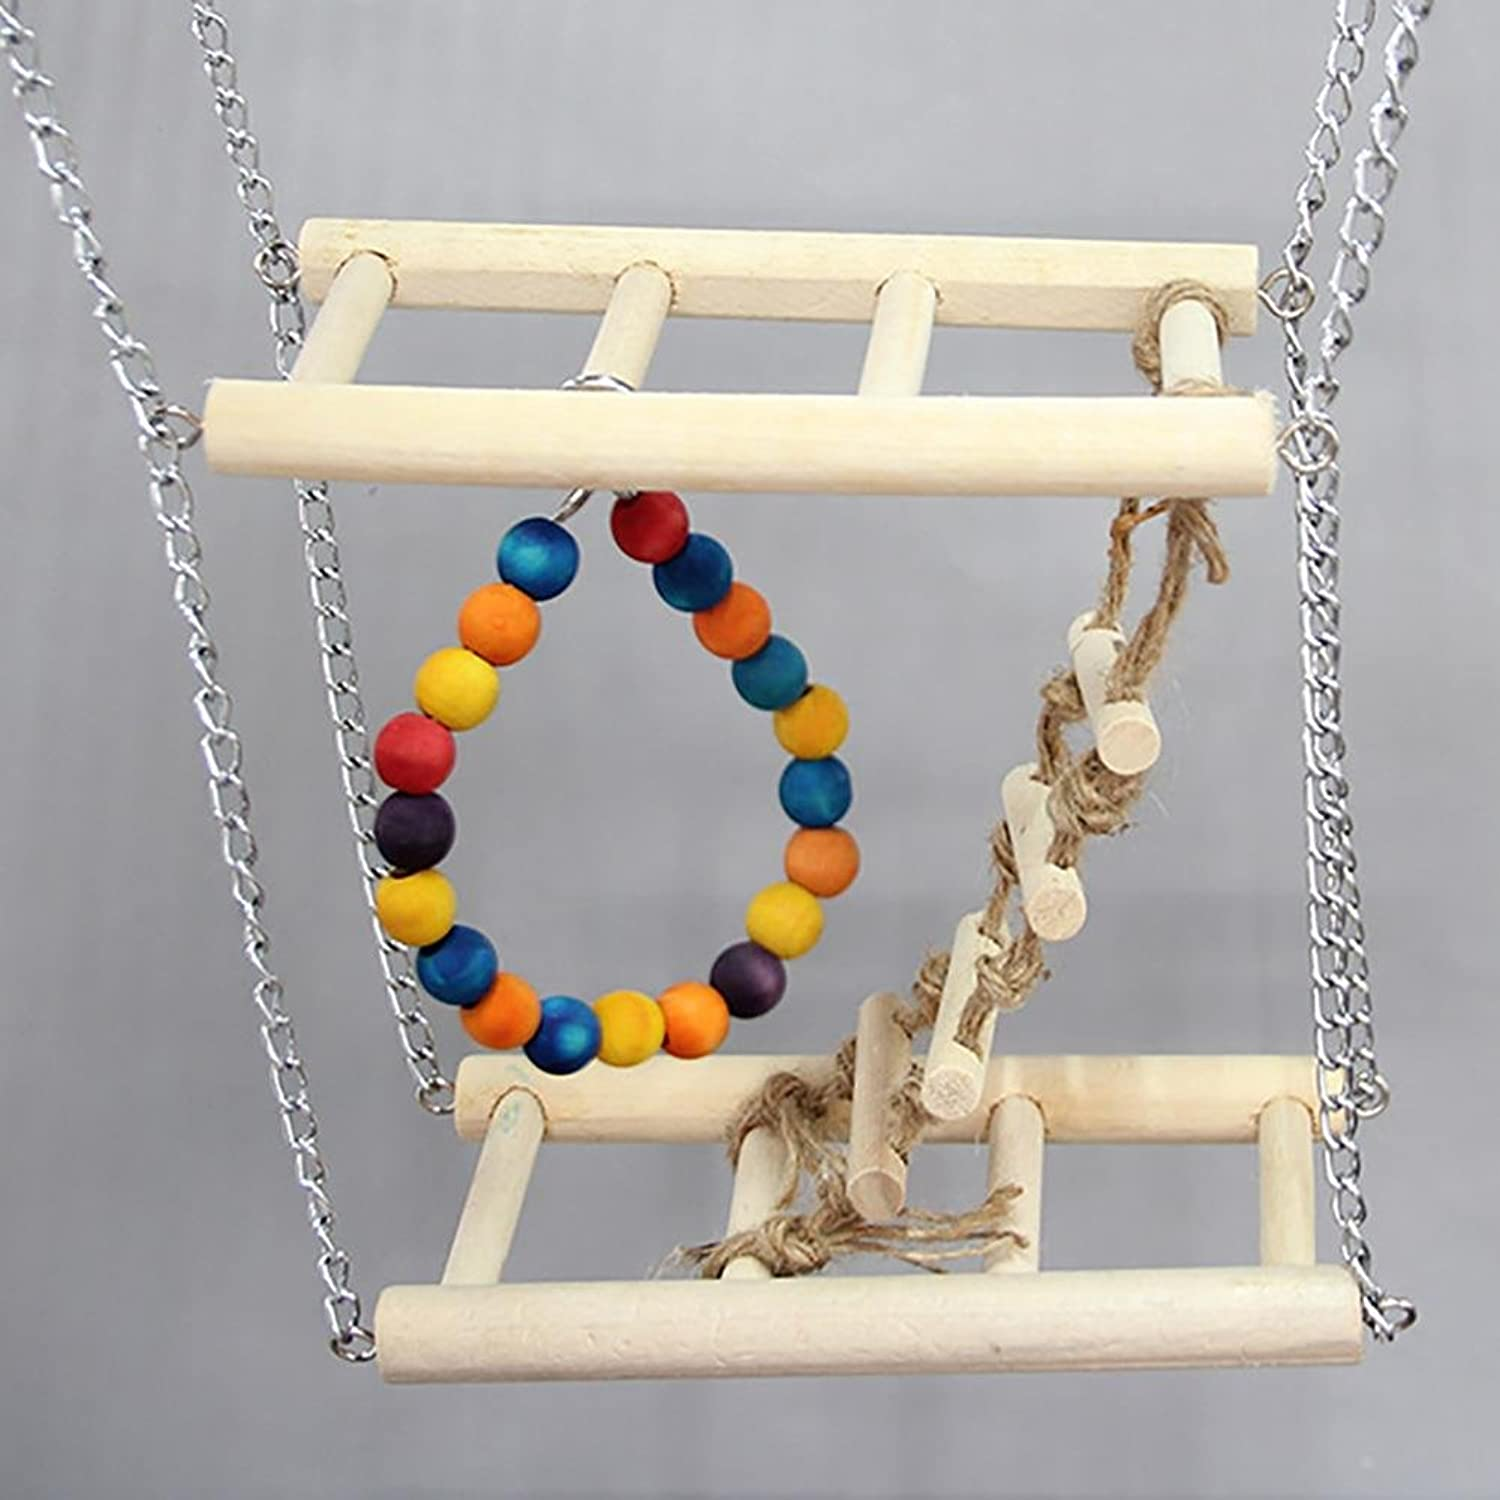 Myyxt Bird Ladder Parred Toys Wooden Ladder And Yoke Swing Stand Up The Stairs